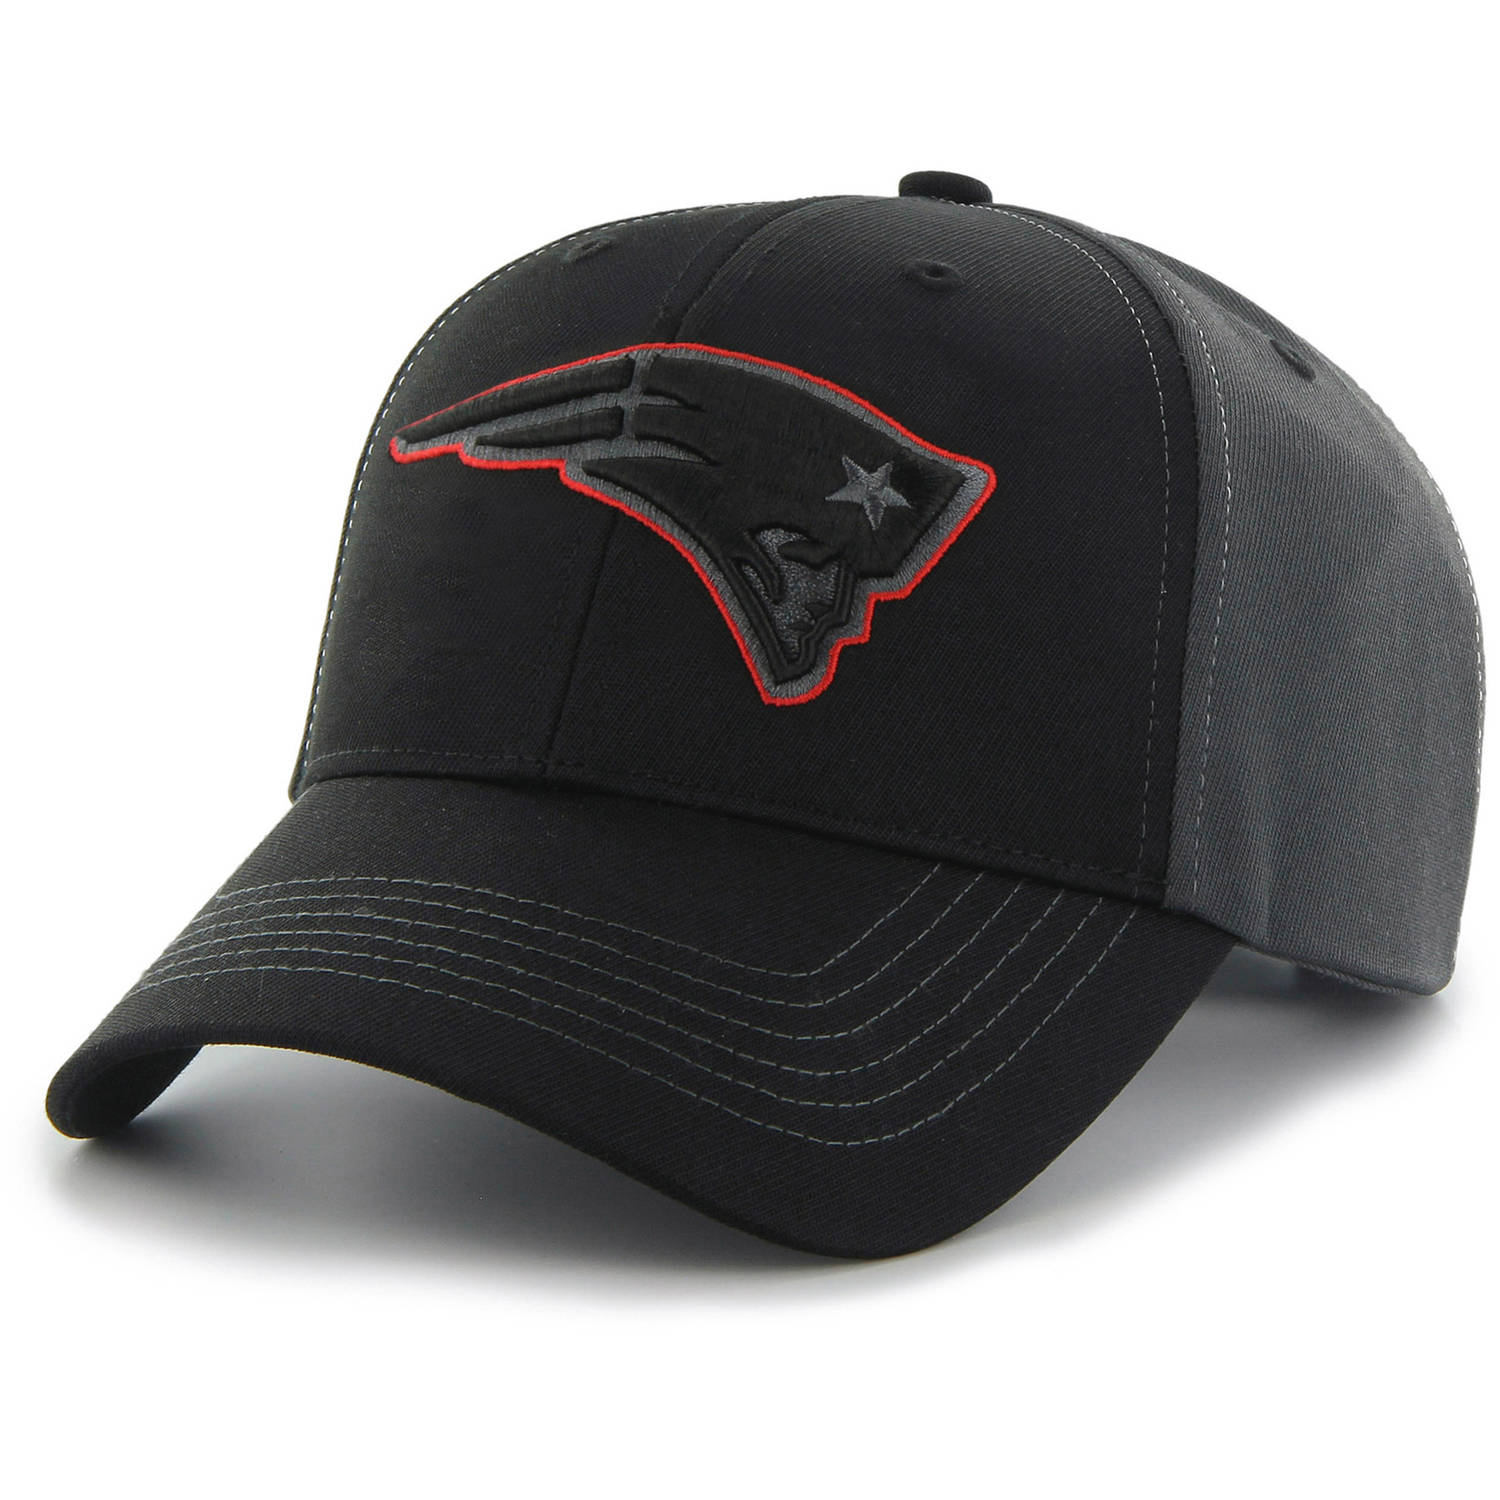 NFL New England Patriots Mass Blackball Cap - Fan Favorite